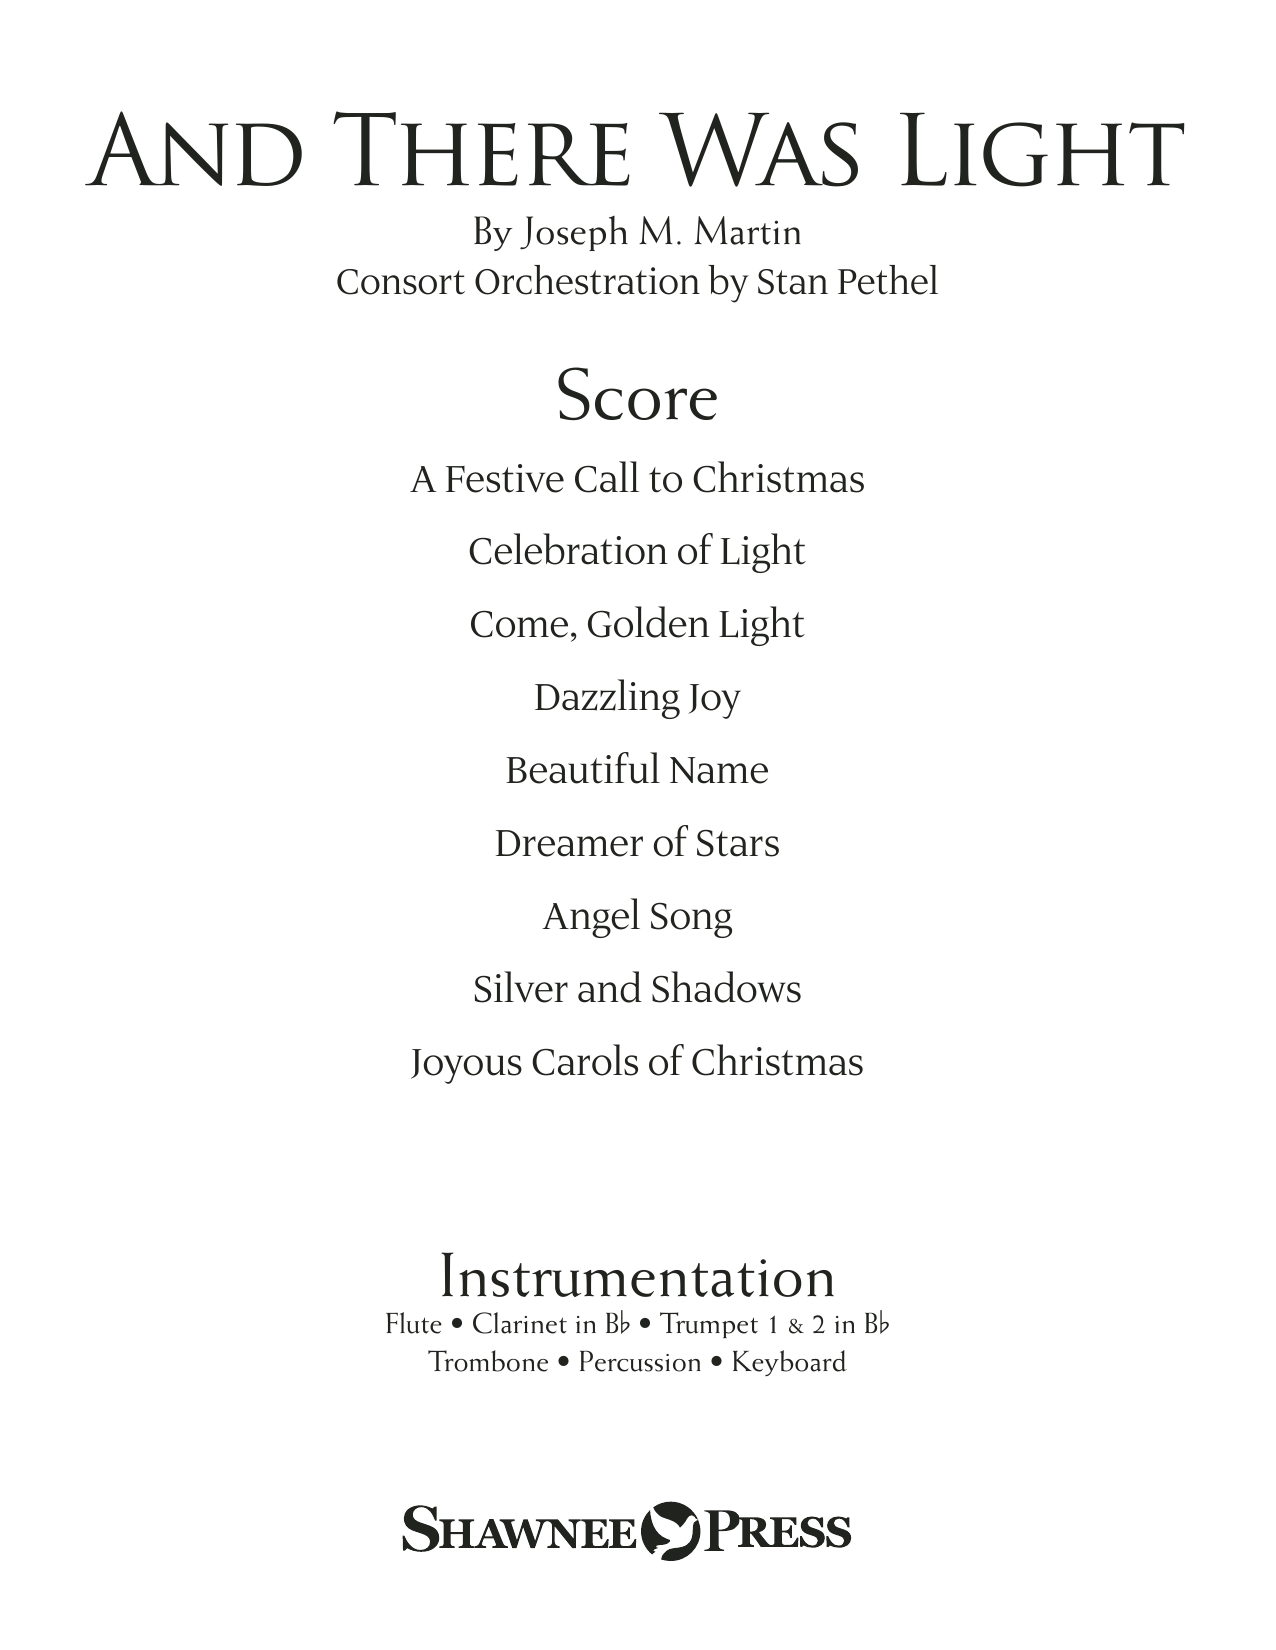 Joseph M. Martin And There Was Light - Full Score sheet music notes and chords